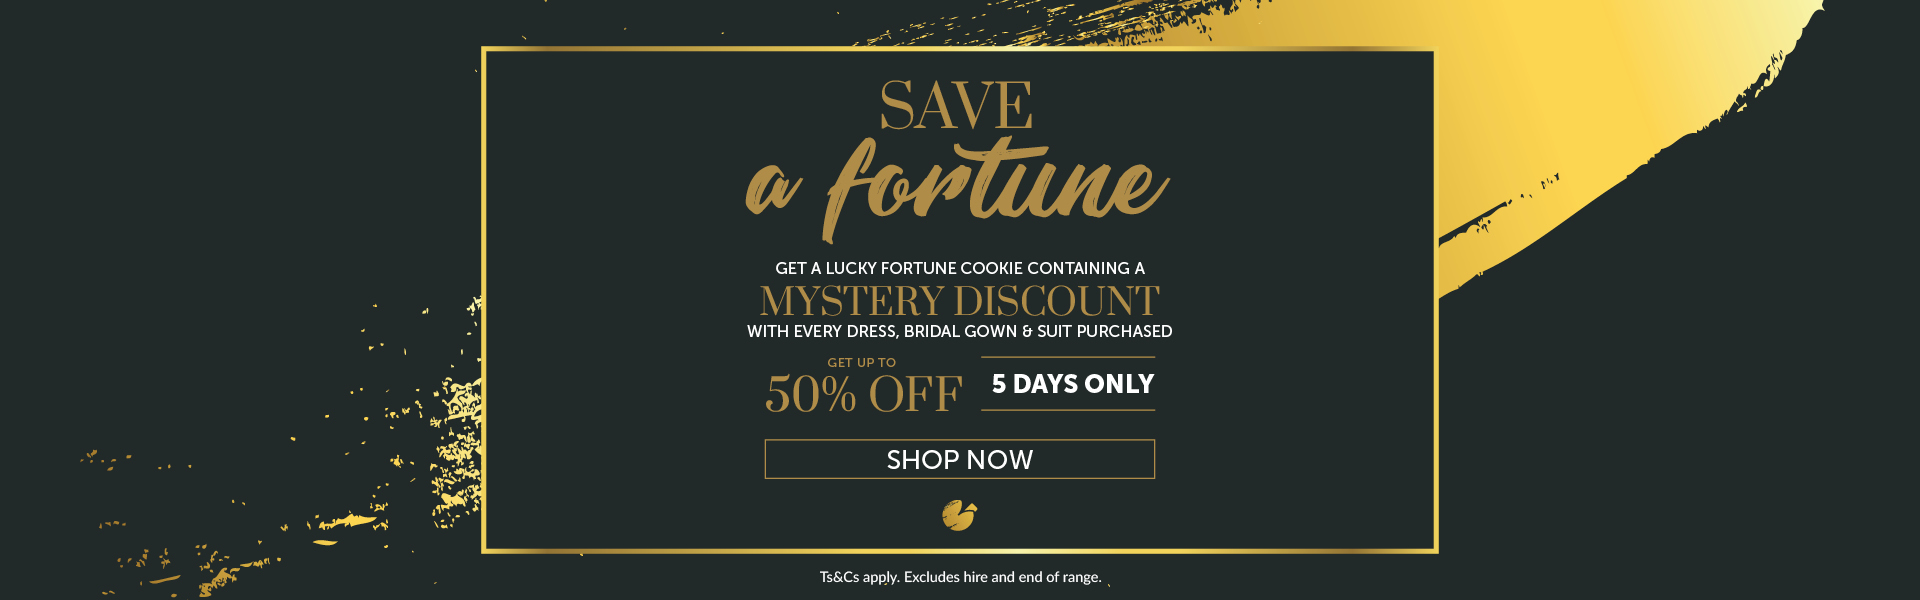 Promo Banner Bride&co Deal of the month April 2018